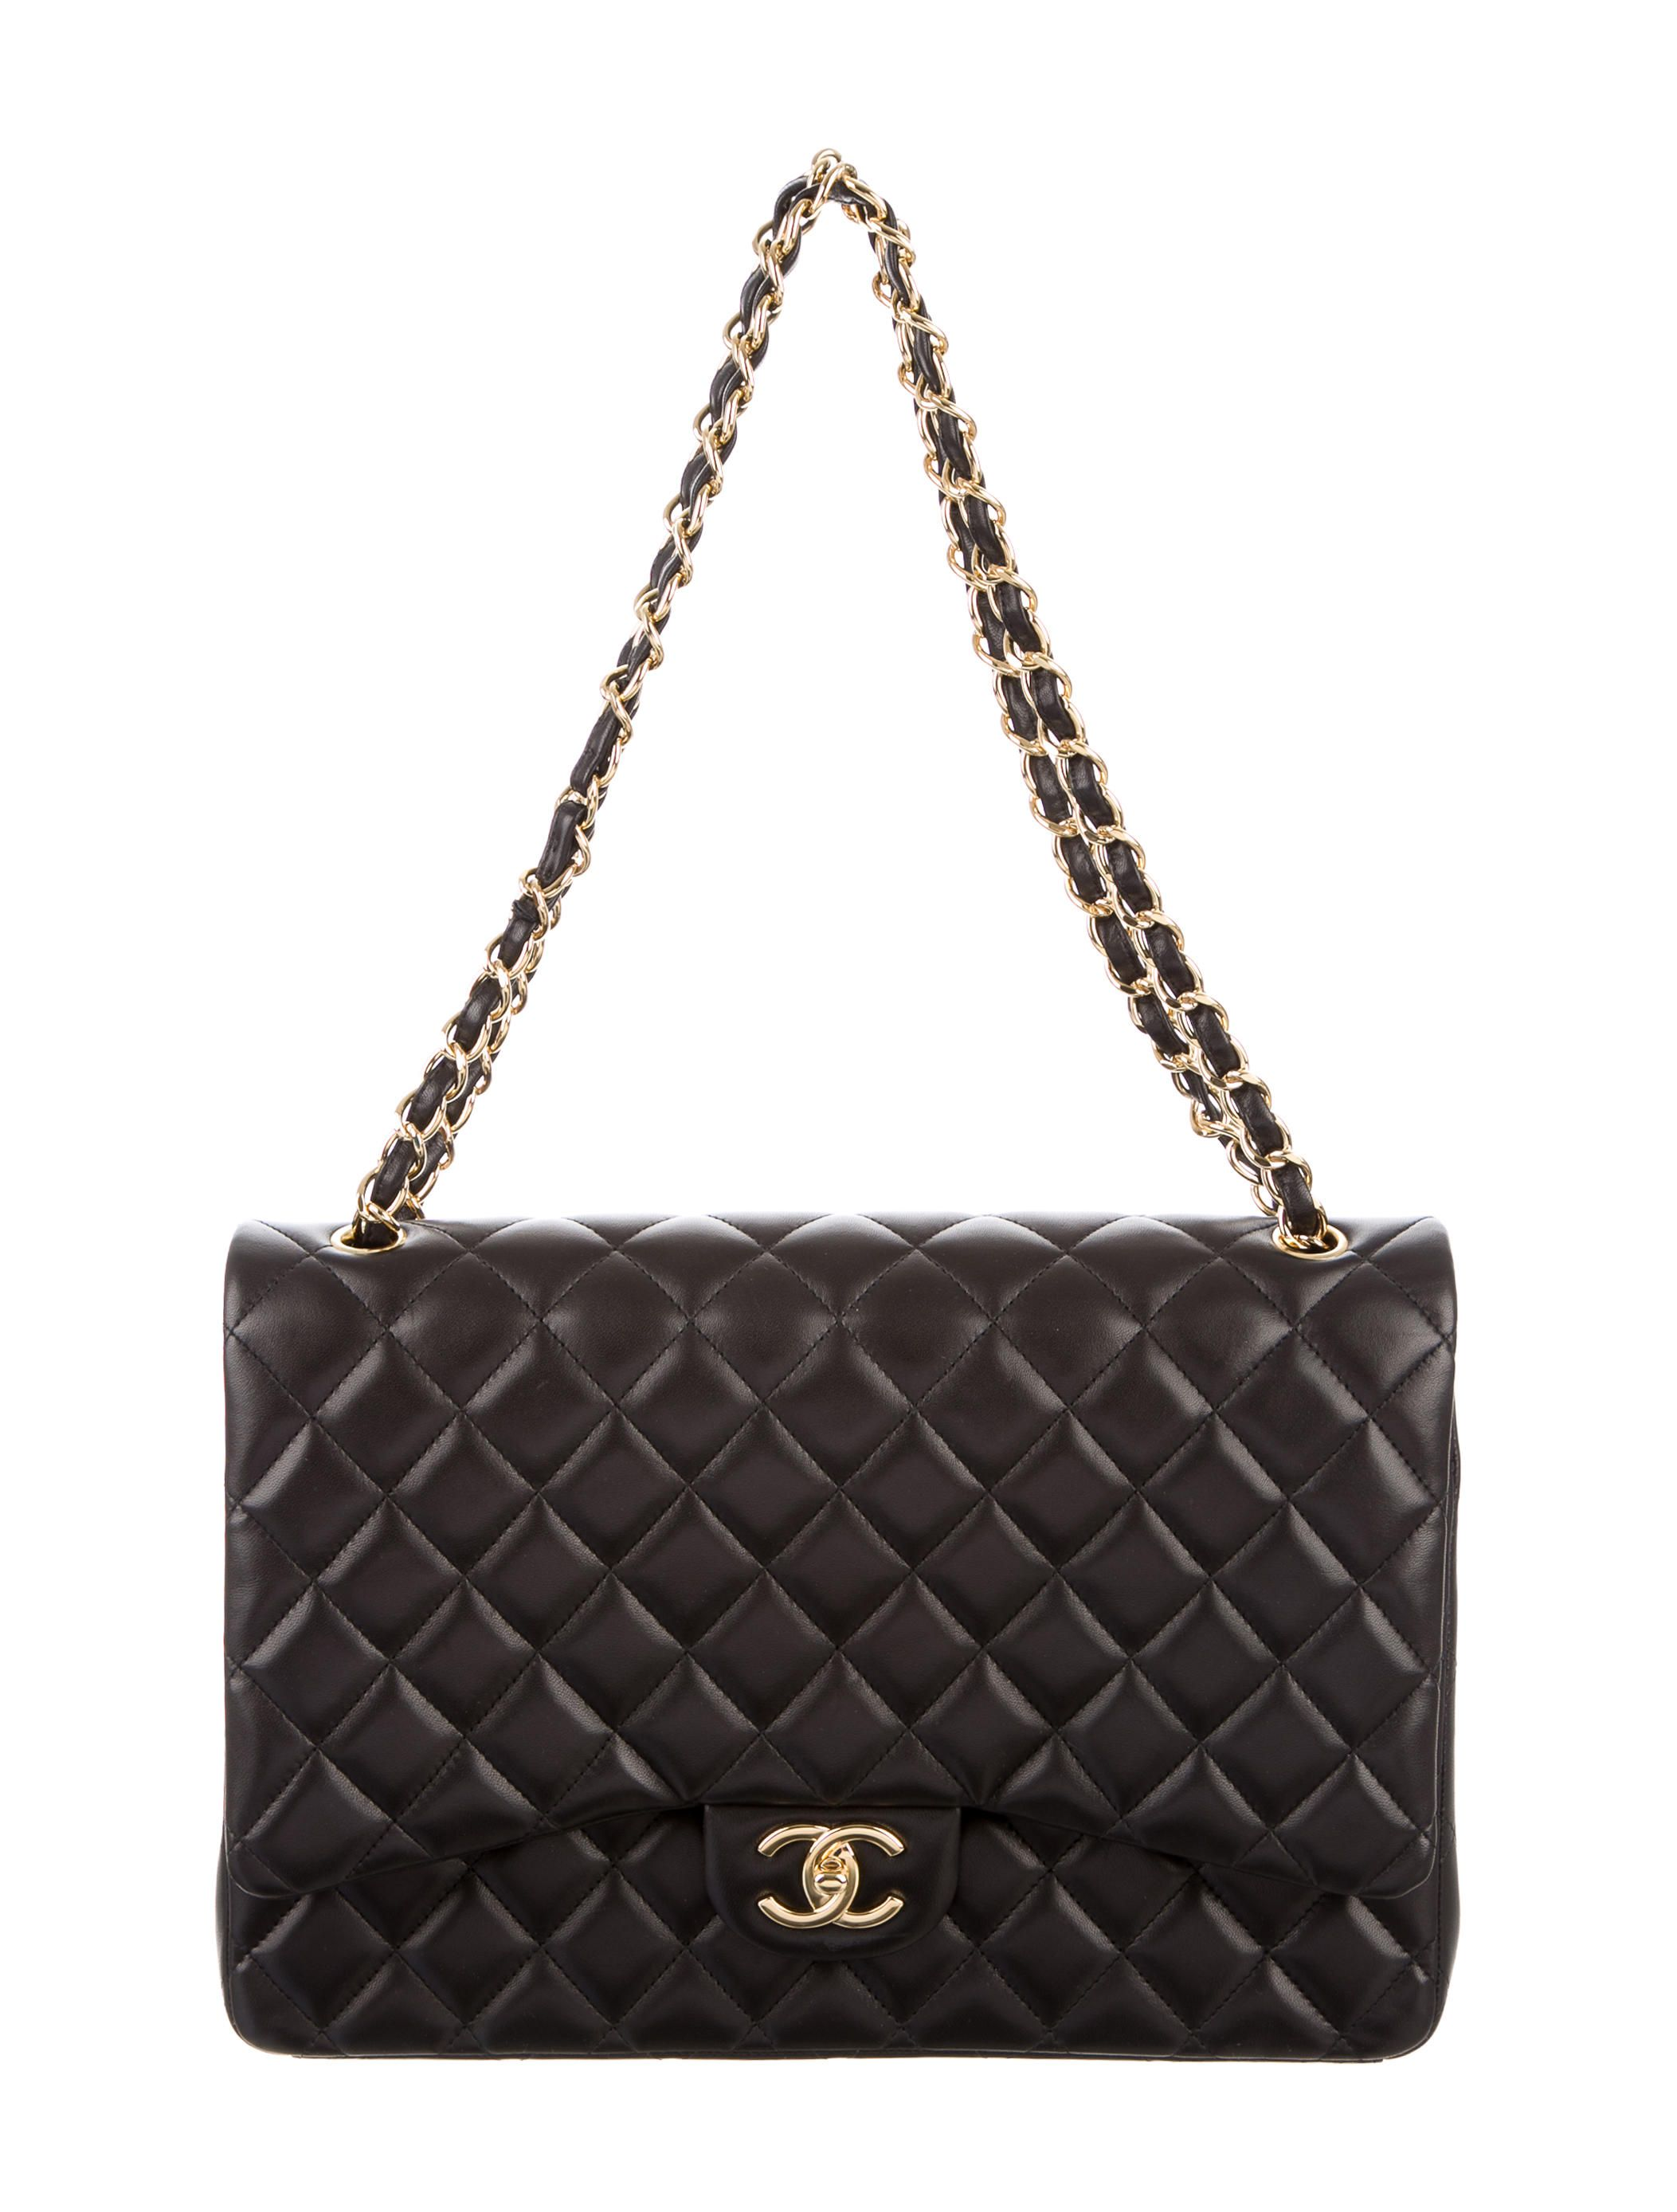 ec789bdb4a45 Black quilted lambskin Chanel Classic Maxi Flap bag with gold-tone  hardware, single shoulder strap with chain-link and leather accents, single  slit pocket ...